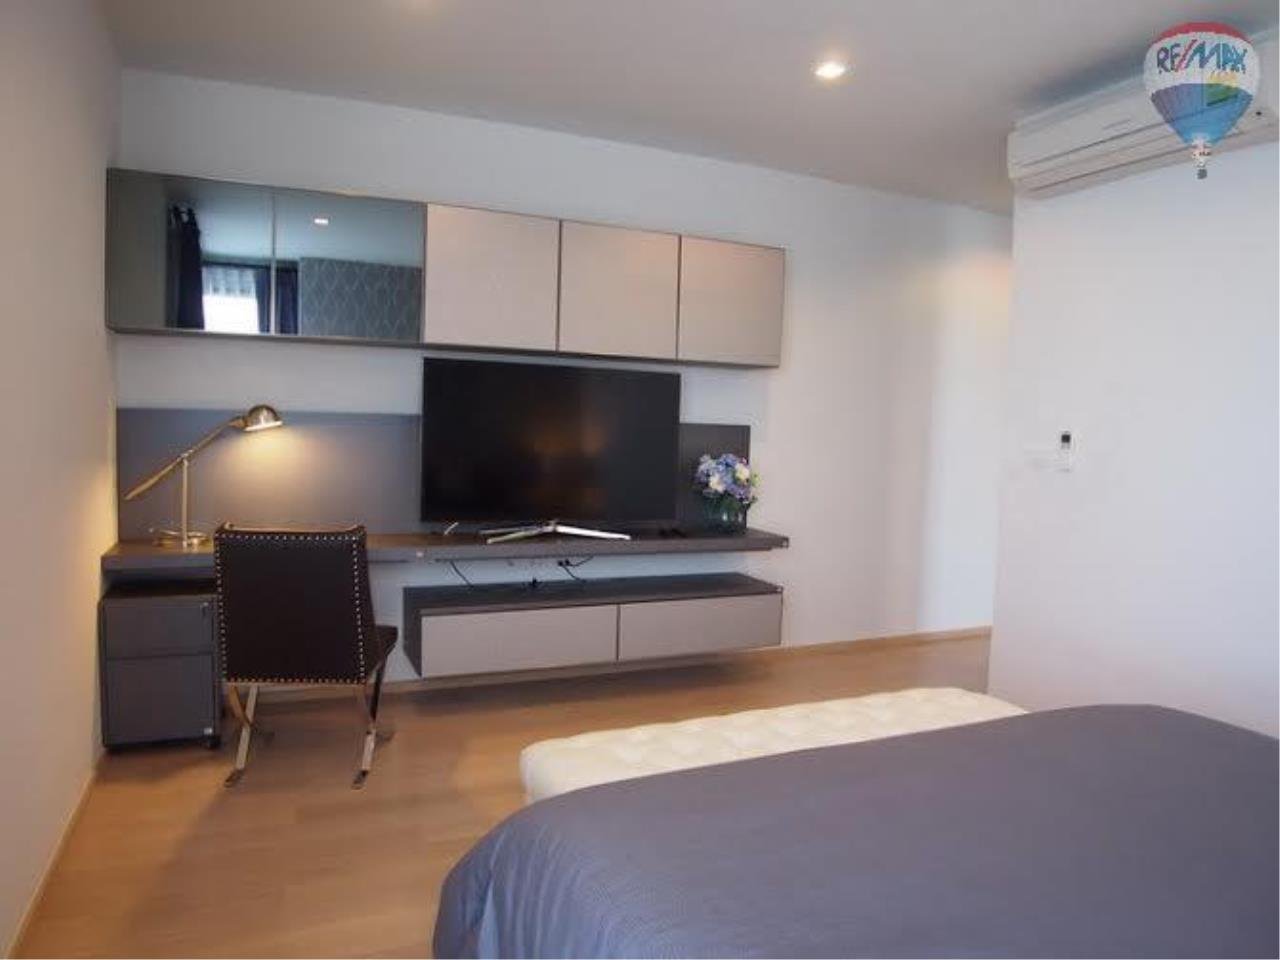 RE/MAX Properties Agency's 2 Bedrooms 100 Sq.M. in HQ by Sansiri for sale 2